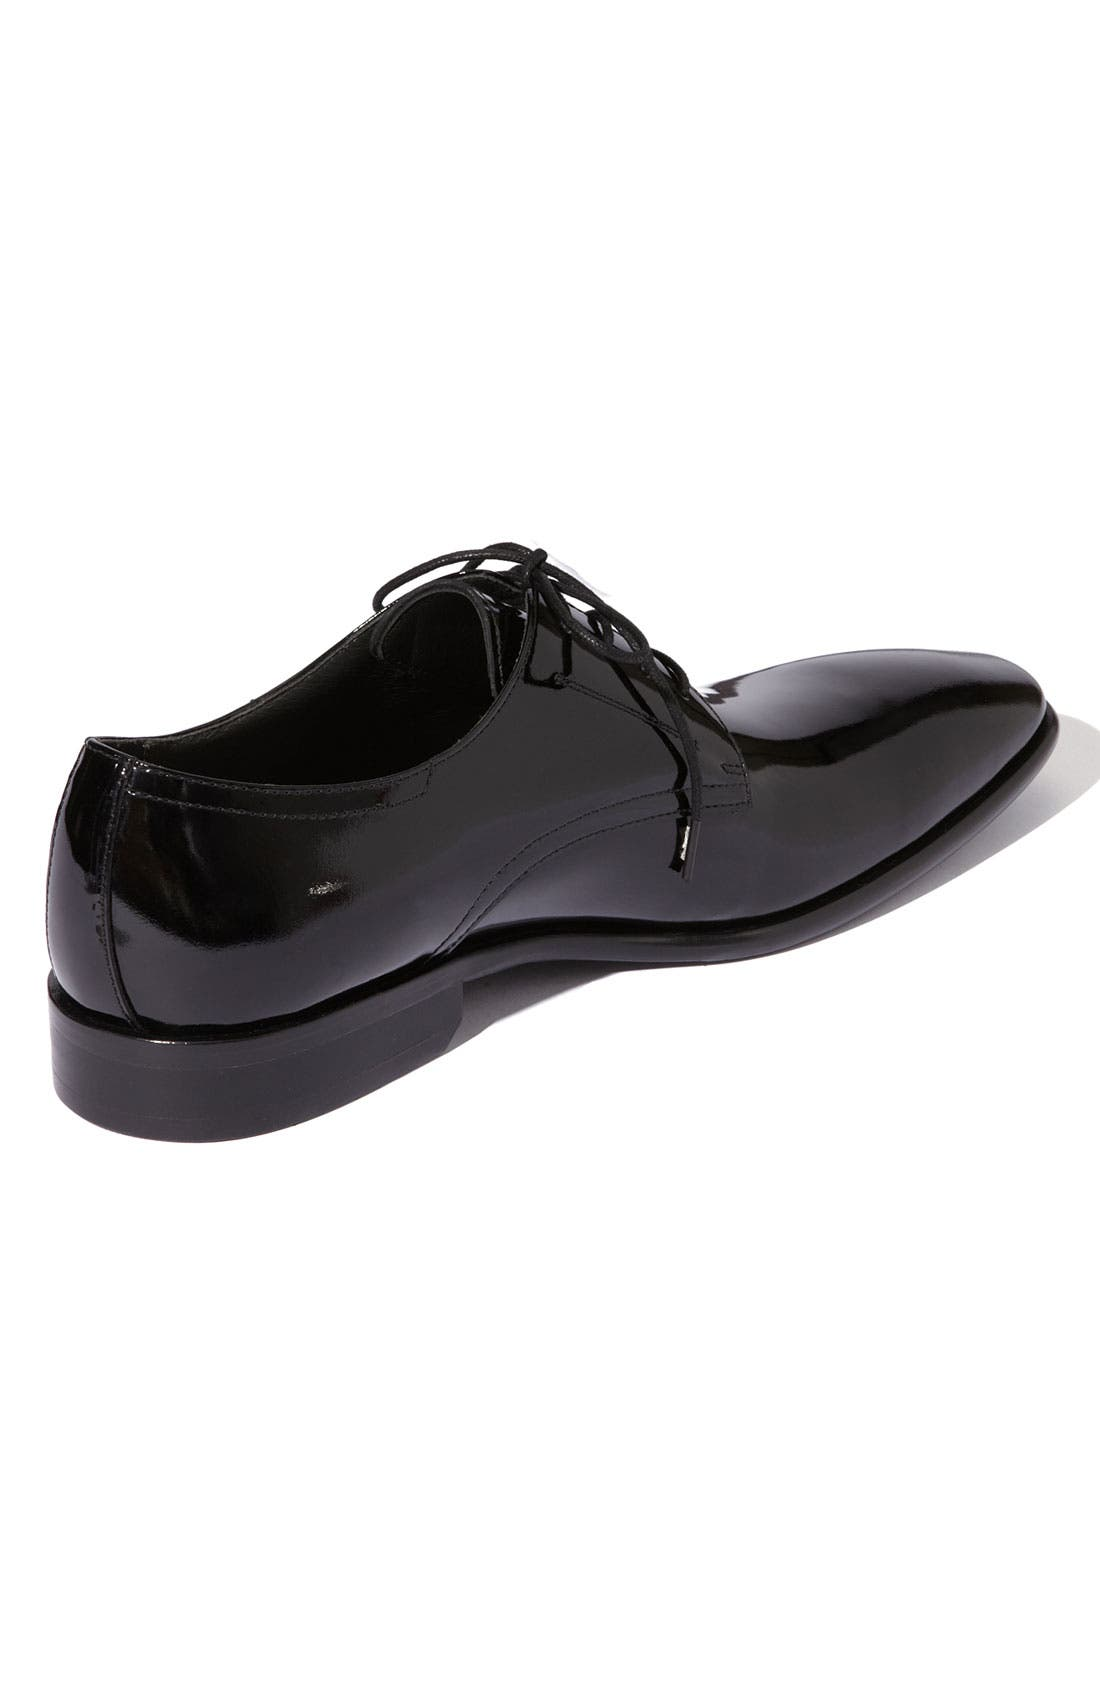 Alternate Image 2  - Calibrate 'Oscar' Patent Leather Dress Shoe (Men)